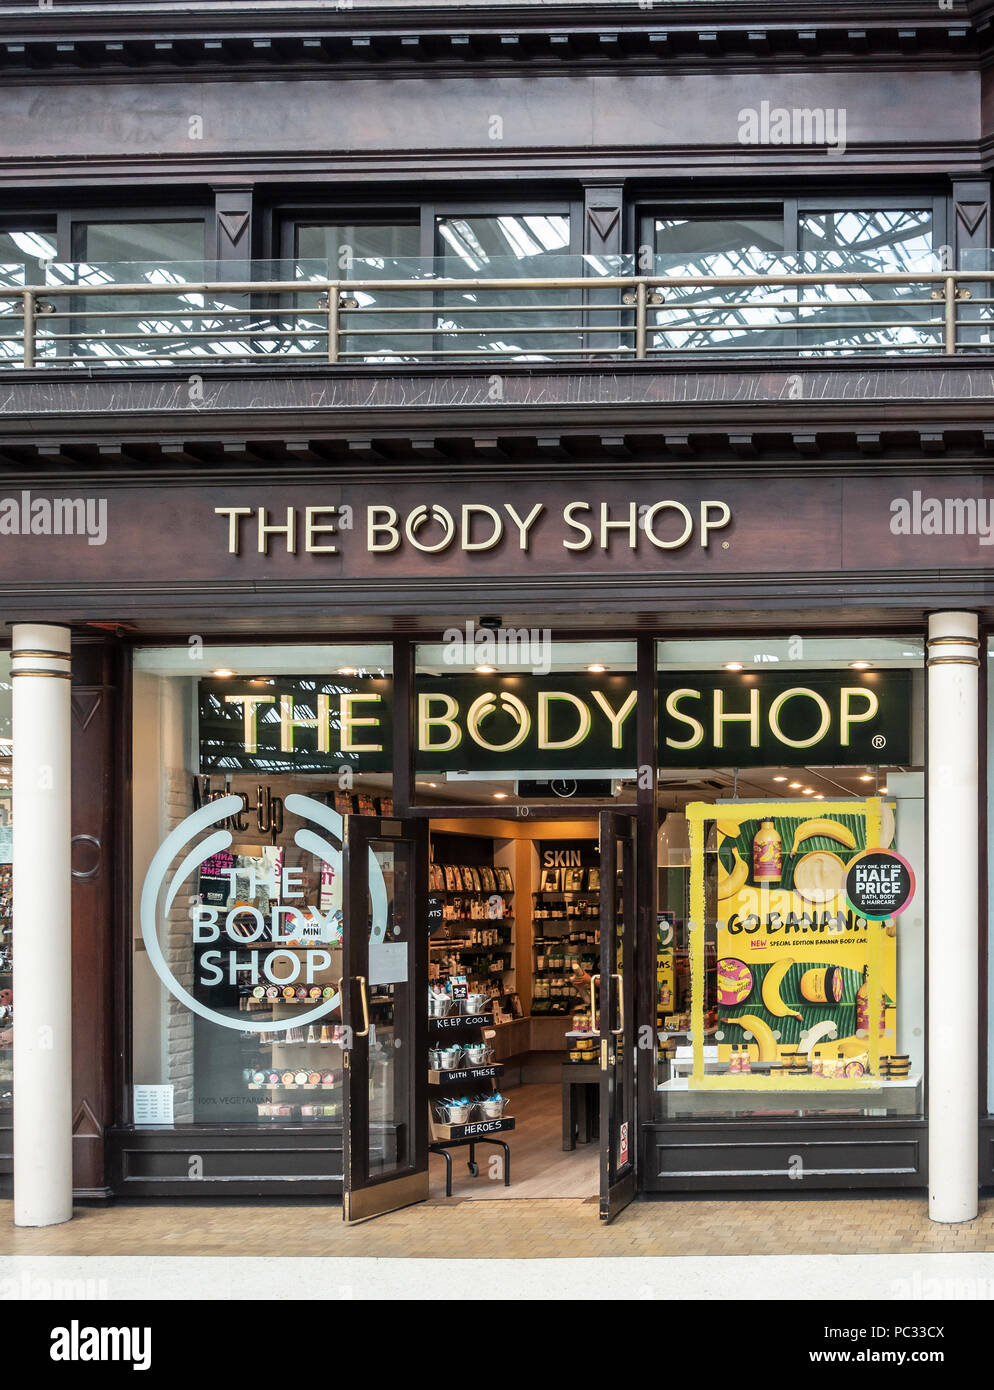 The Body Shop retail outlet in the concourse of Glasgow Central Station. Toiletries, skin care and beauty products. - Stock Image